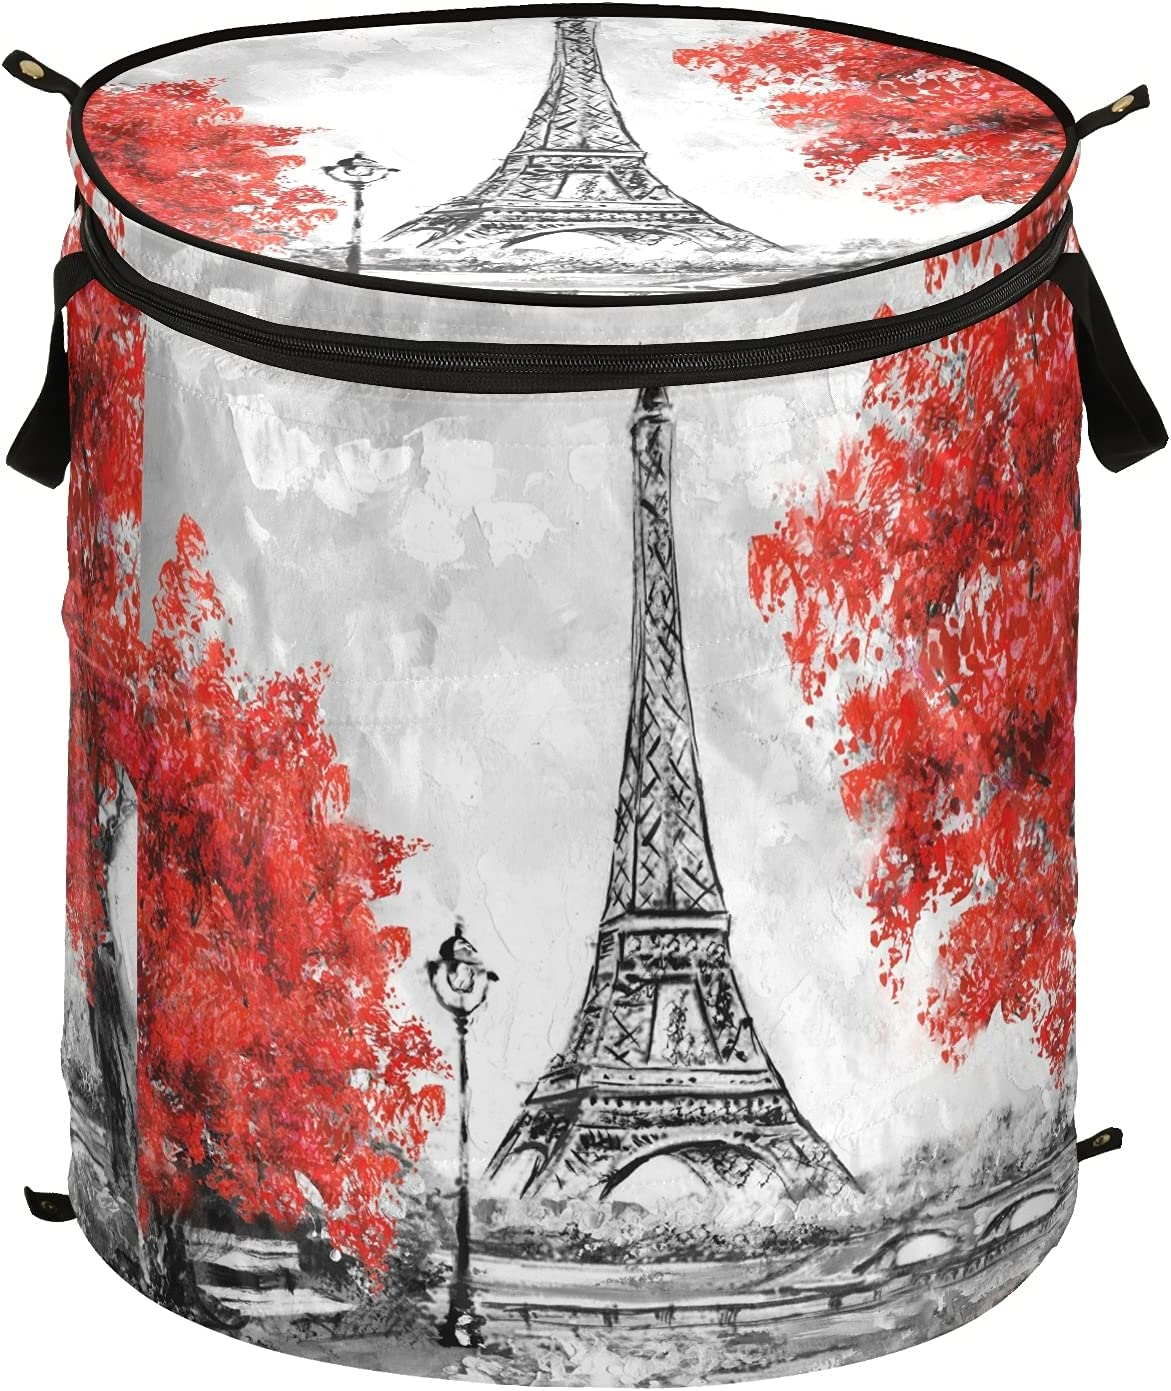 Paris Eiffel Tower Pop Up Laundry Hamper security Foldable Stora Indianapolis Mall with Lid